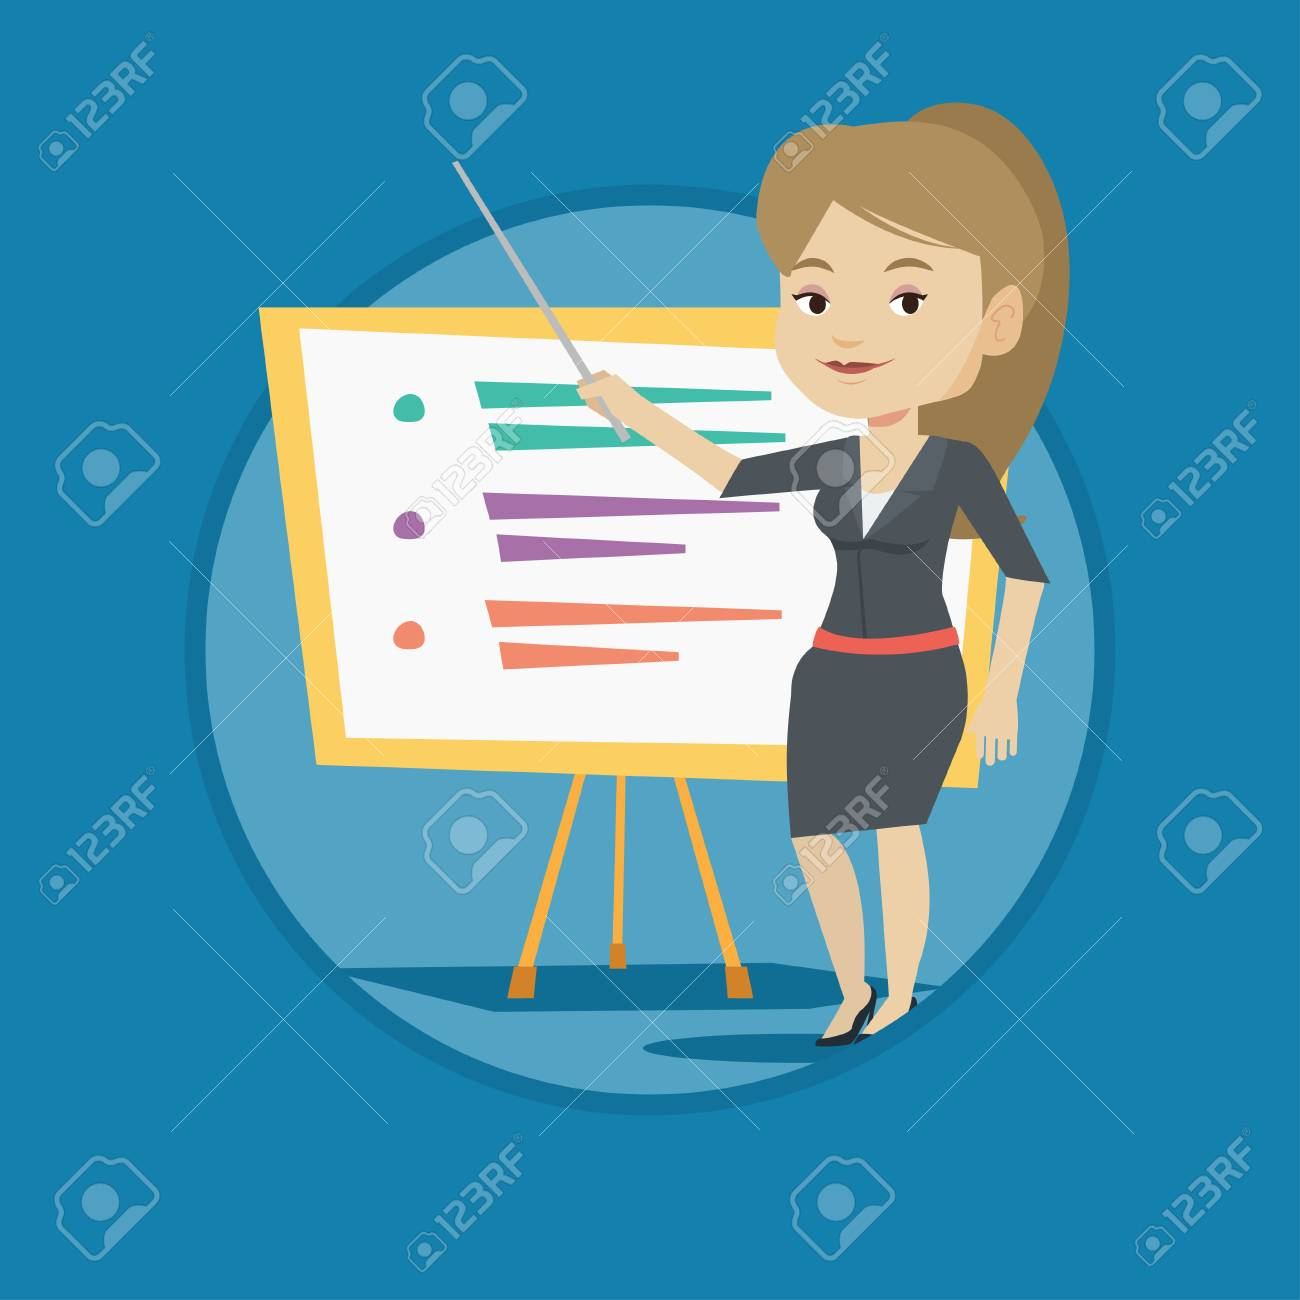 Teacher Or Student Standing In Front Of Board. Royalty Free Cliparts.